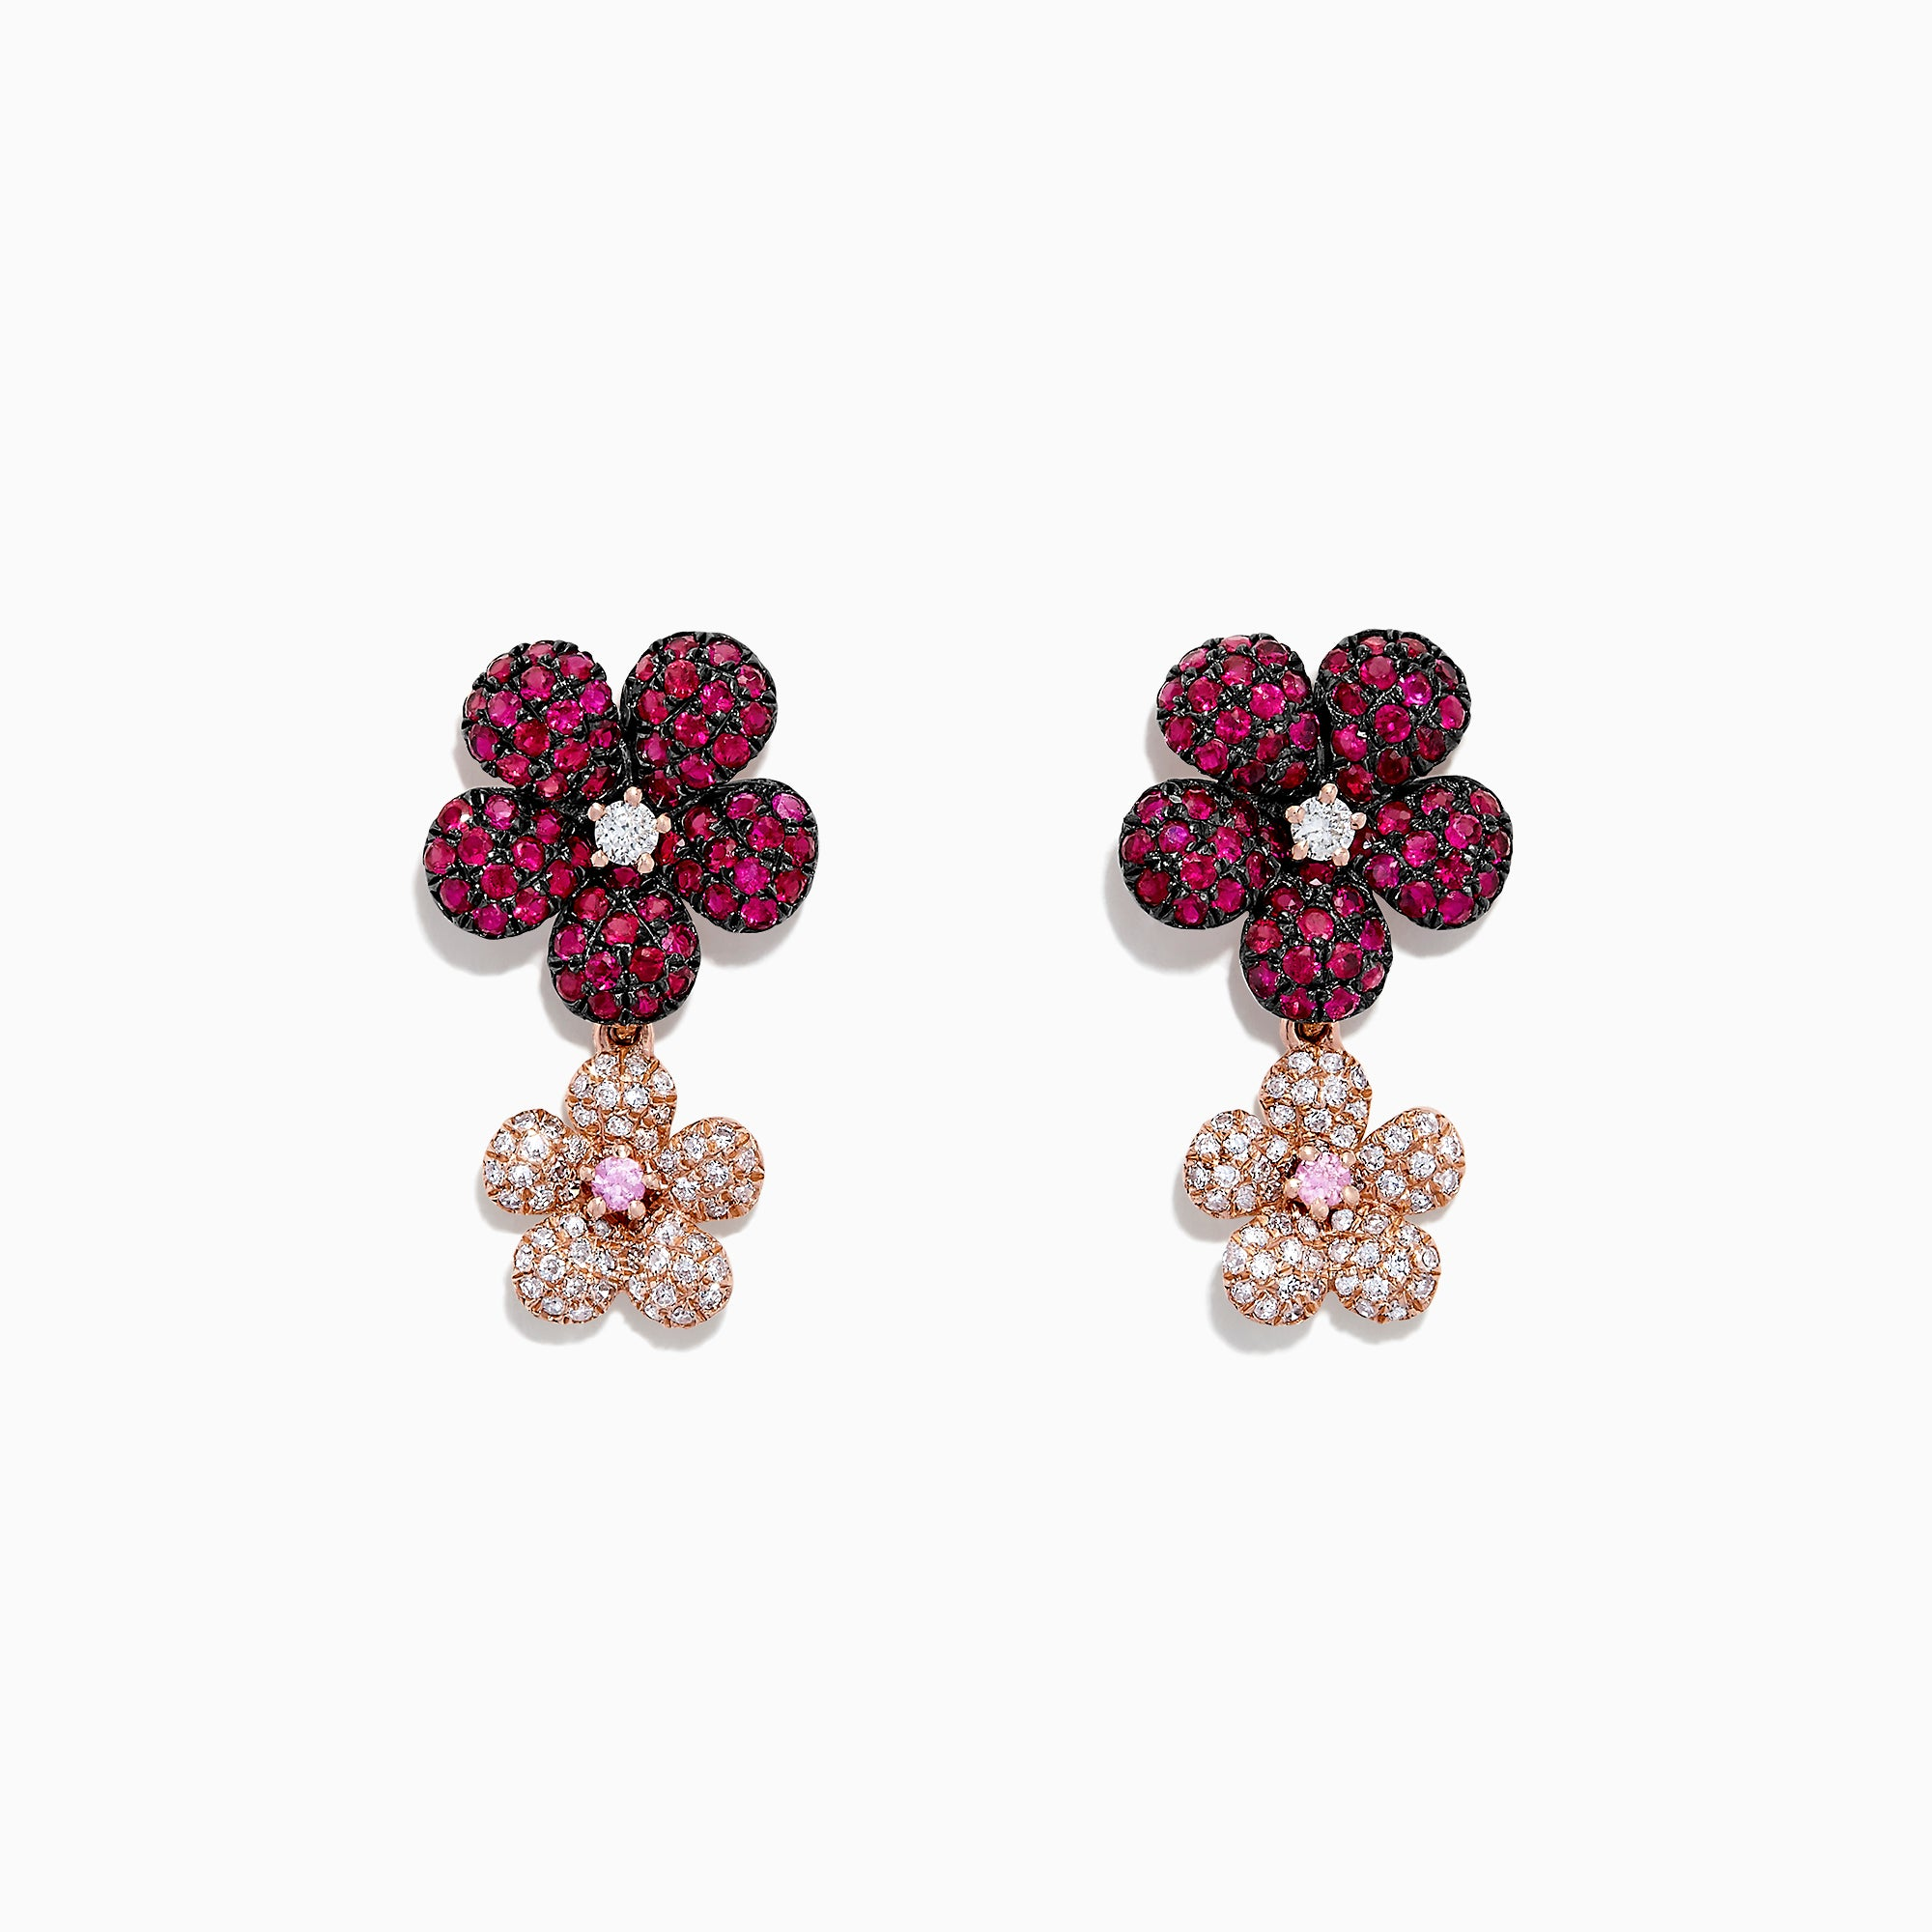 Effy Nature 14K Gold Ruby, Sapphire & Diamond Flowers Earrings, 1.80 TCW